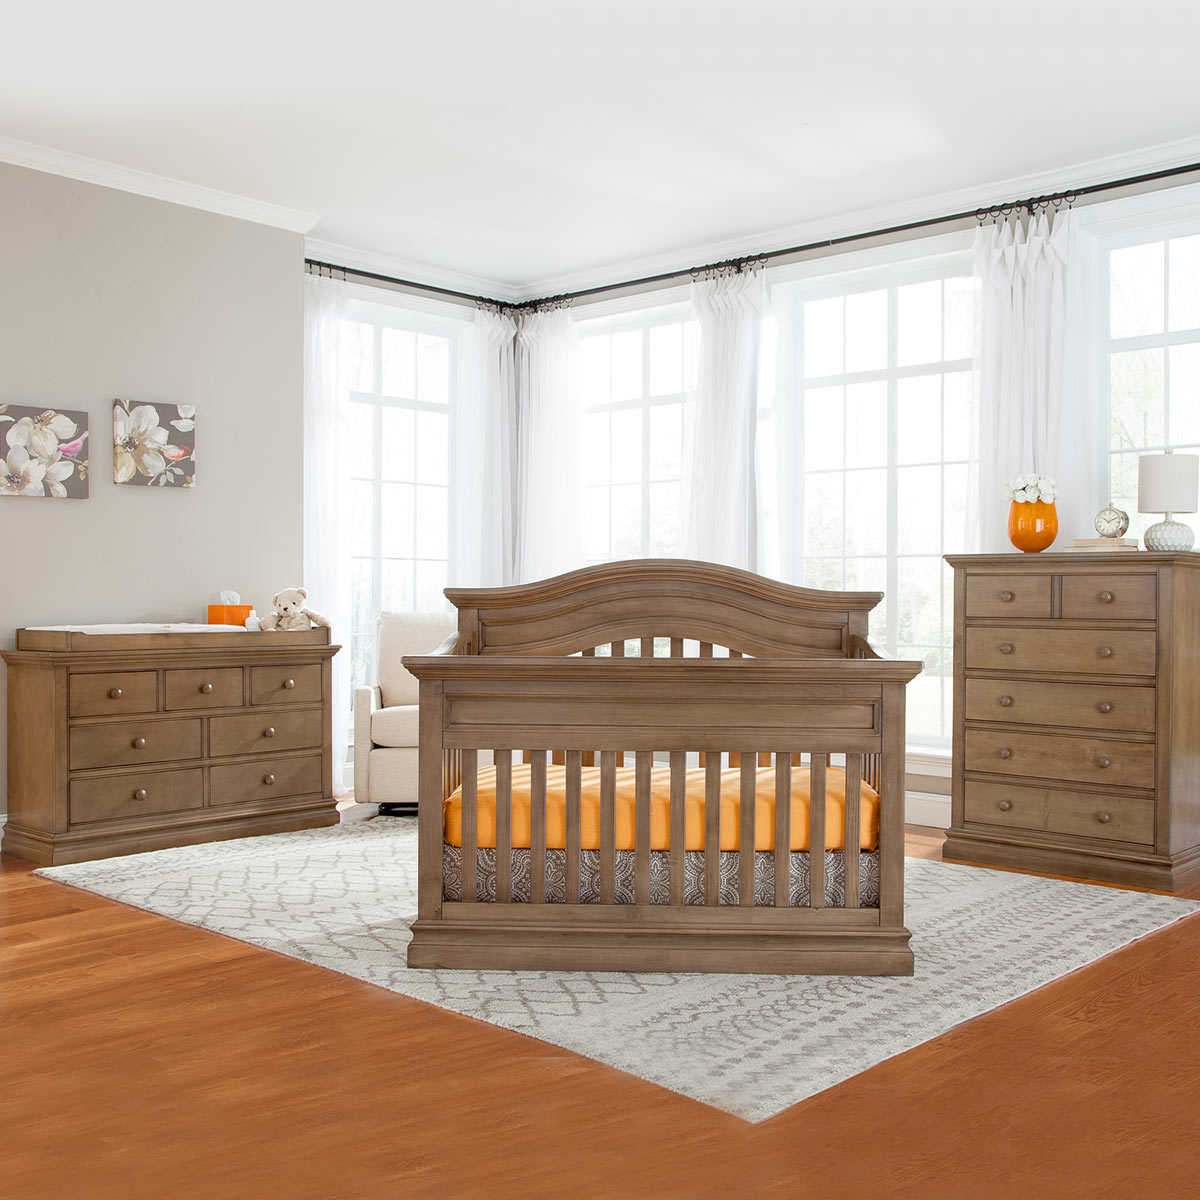 stone double westwood nursery products piece crib specials dresser collections cashew set and harbor cribs furniture